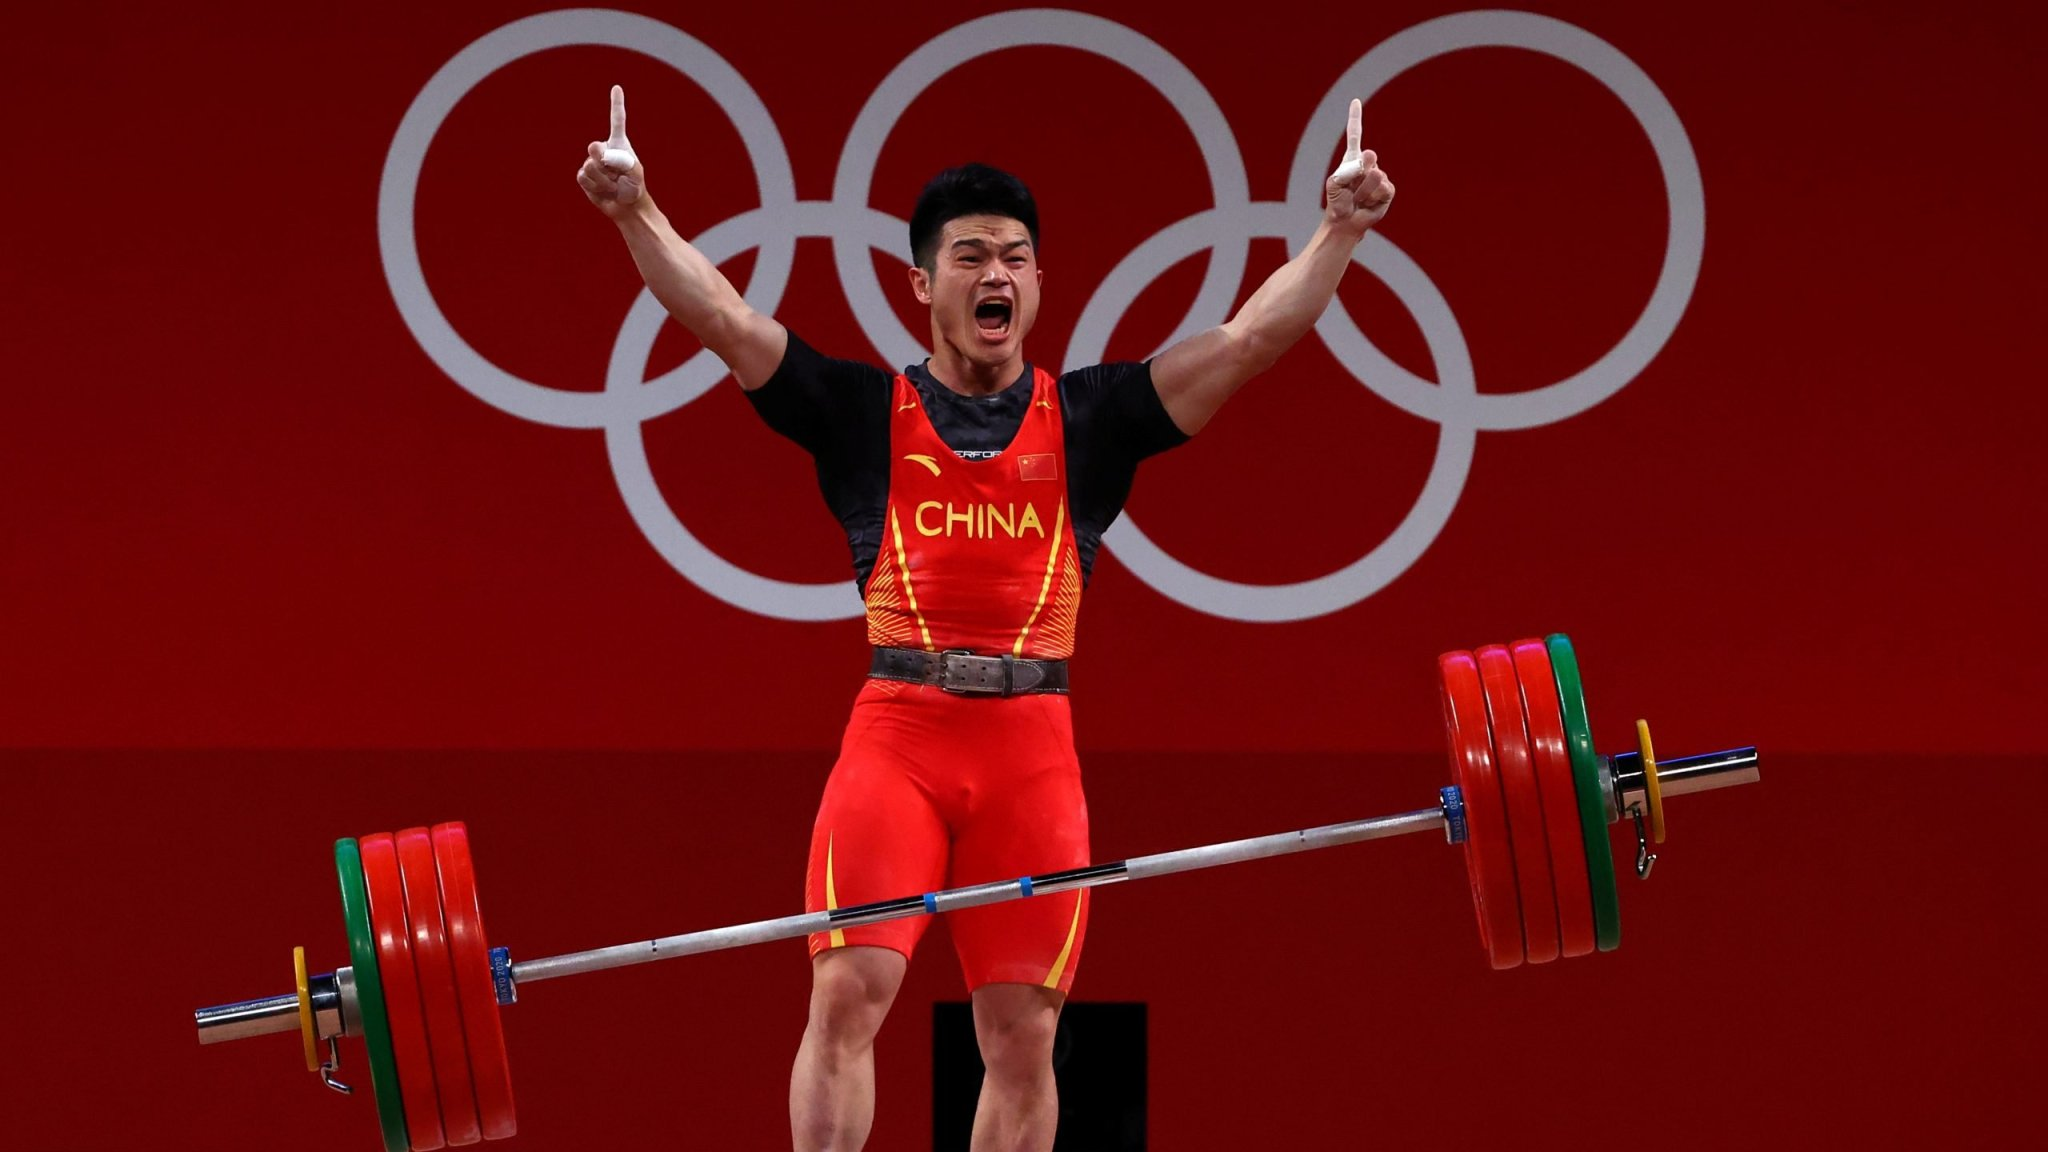 Olympics-Weightlifting-China's Shi breaks world record to win gold in 73kg